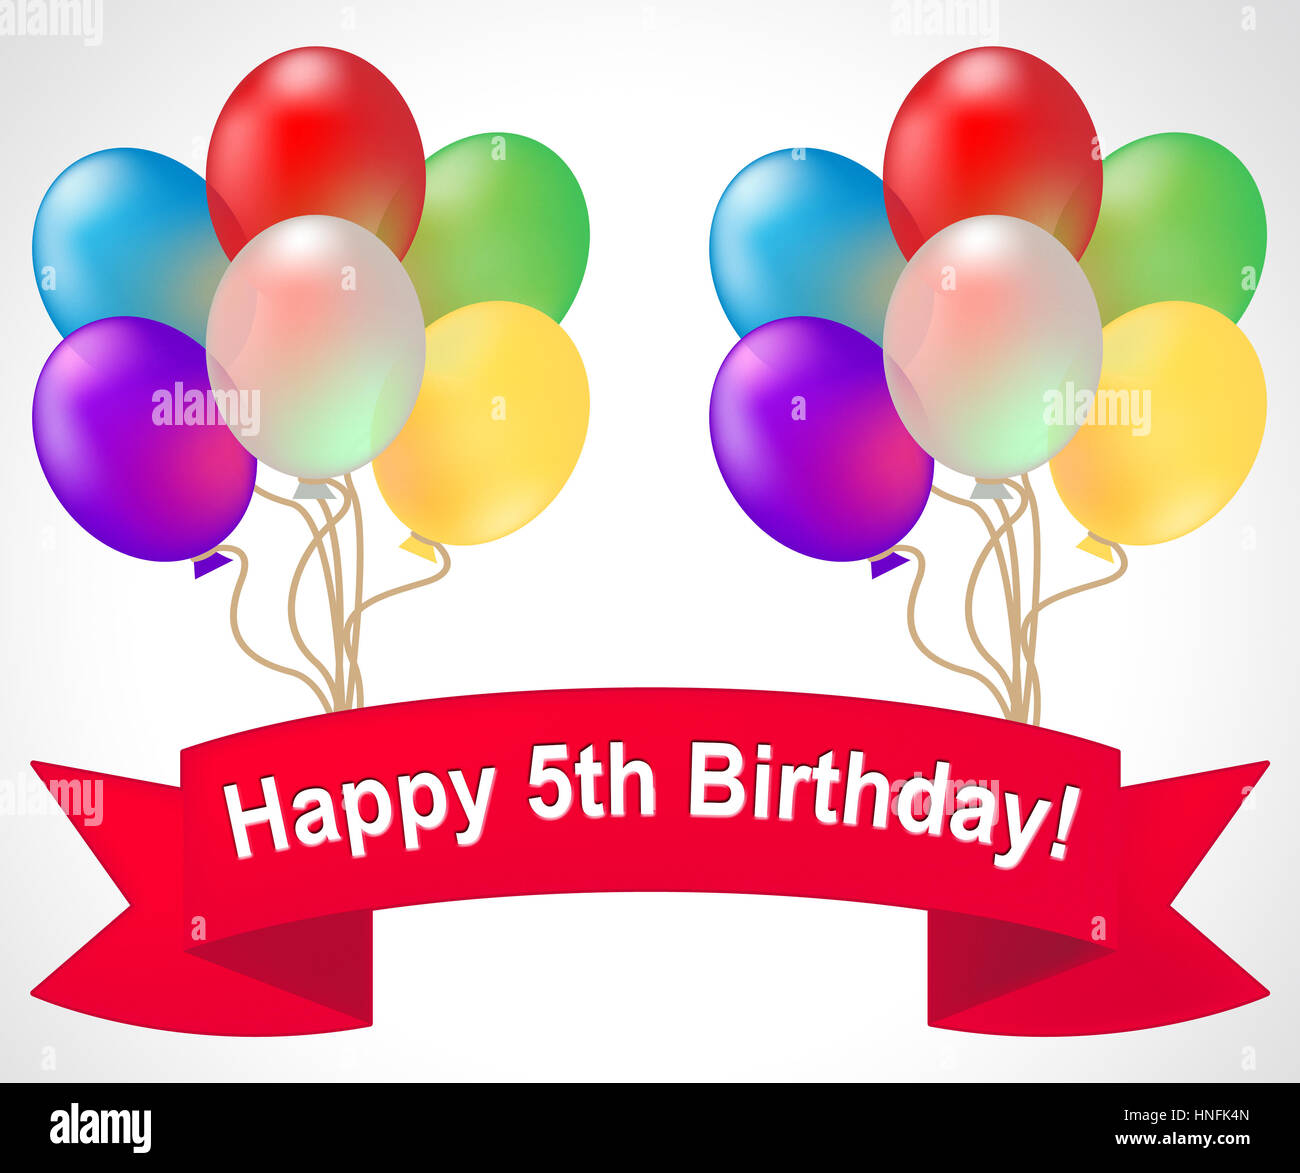 Happy Fifth Birthday Balloons Shows 5th Party Celebration 3d Illustration